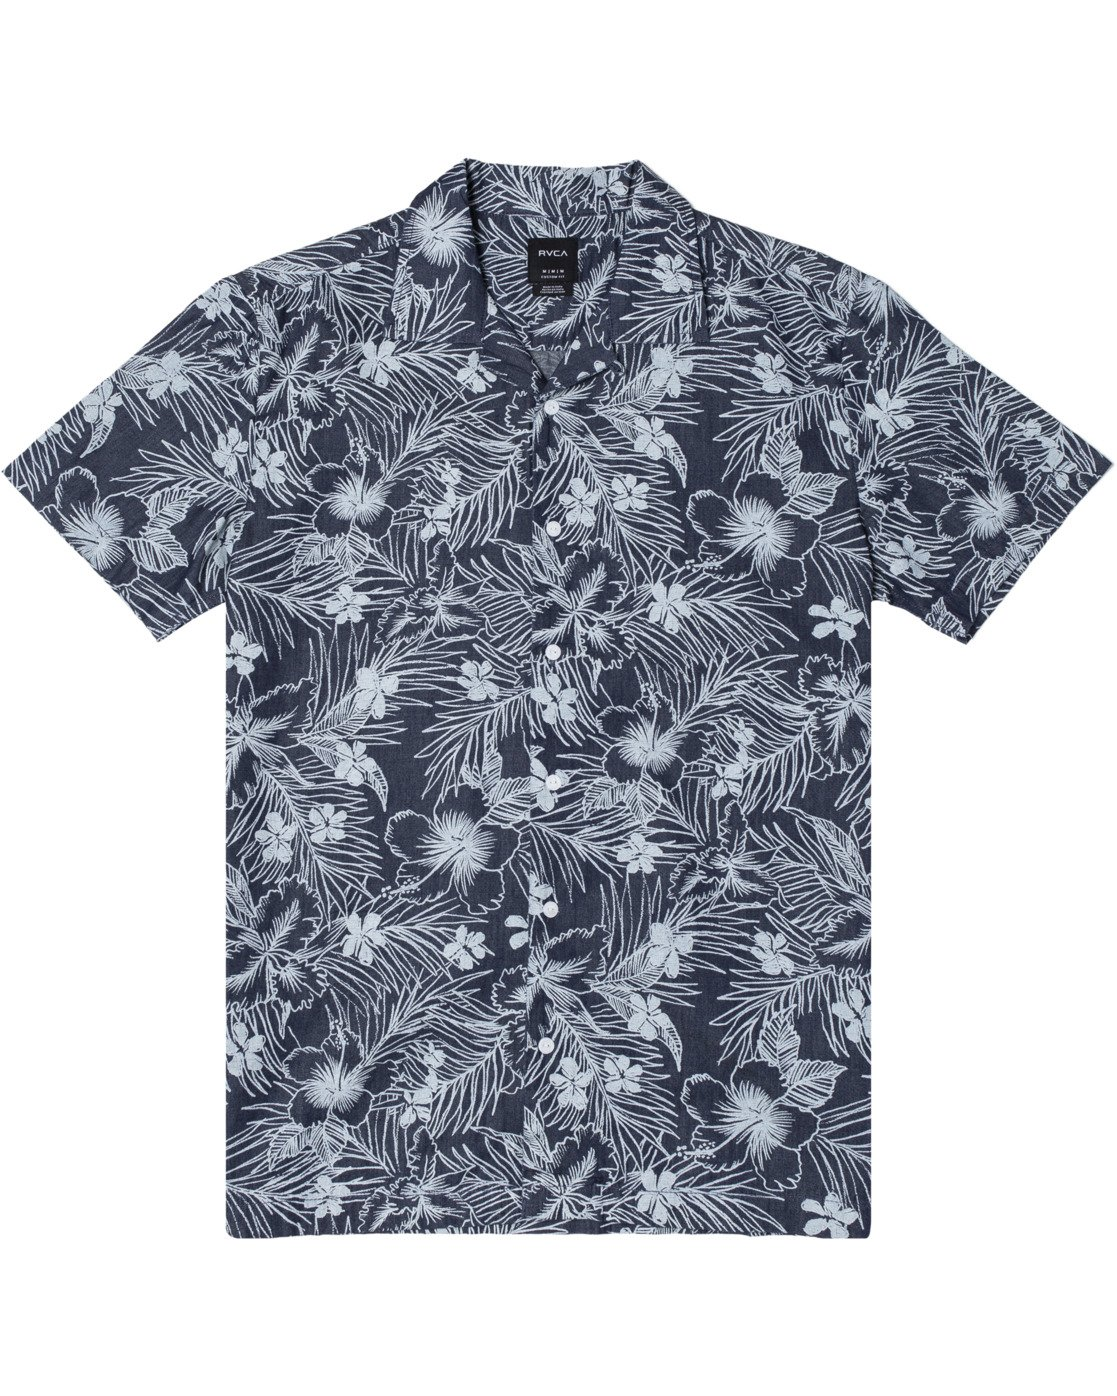 0 SPACED FLORAL SHORT SLEEVE SHIRT Blue M5103RSF RVCA